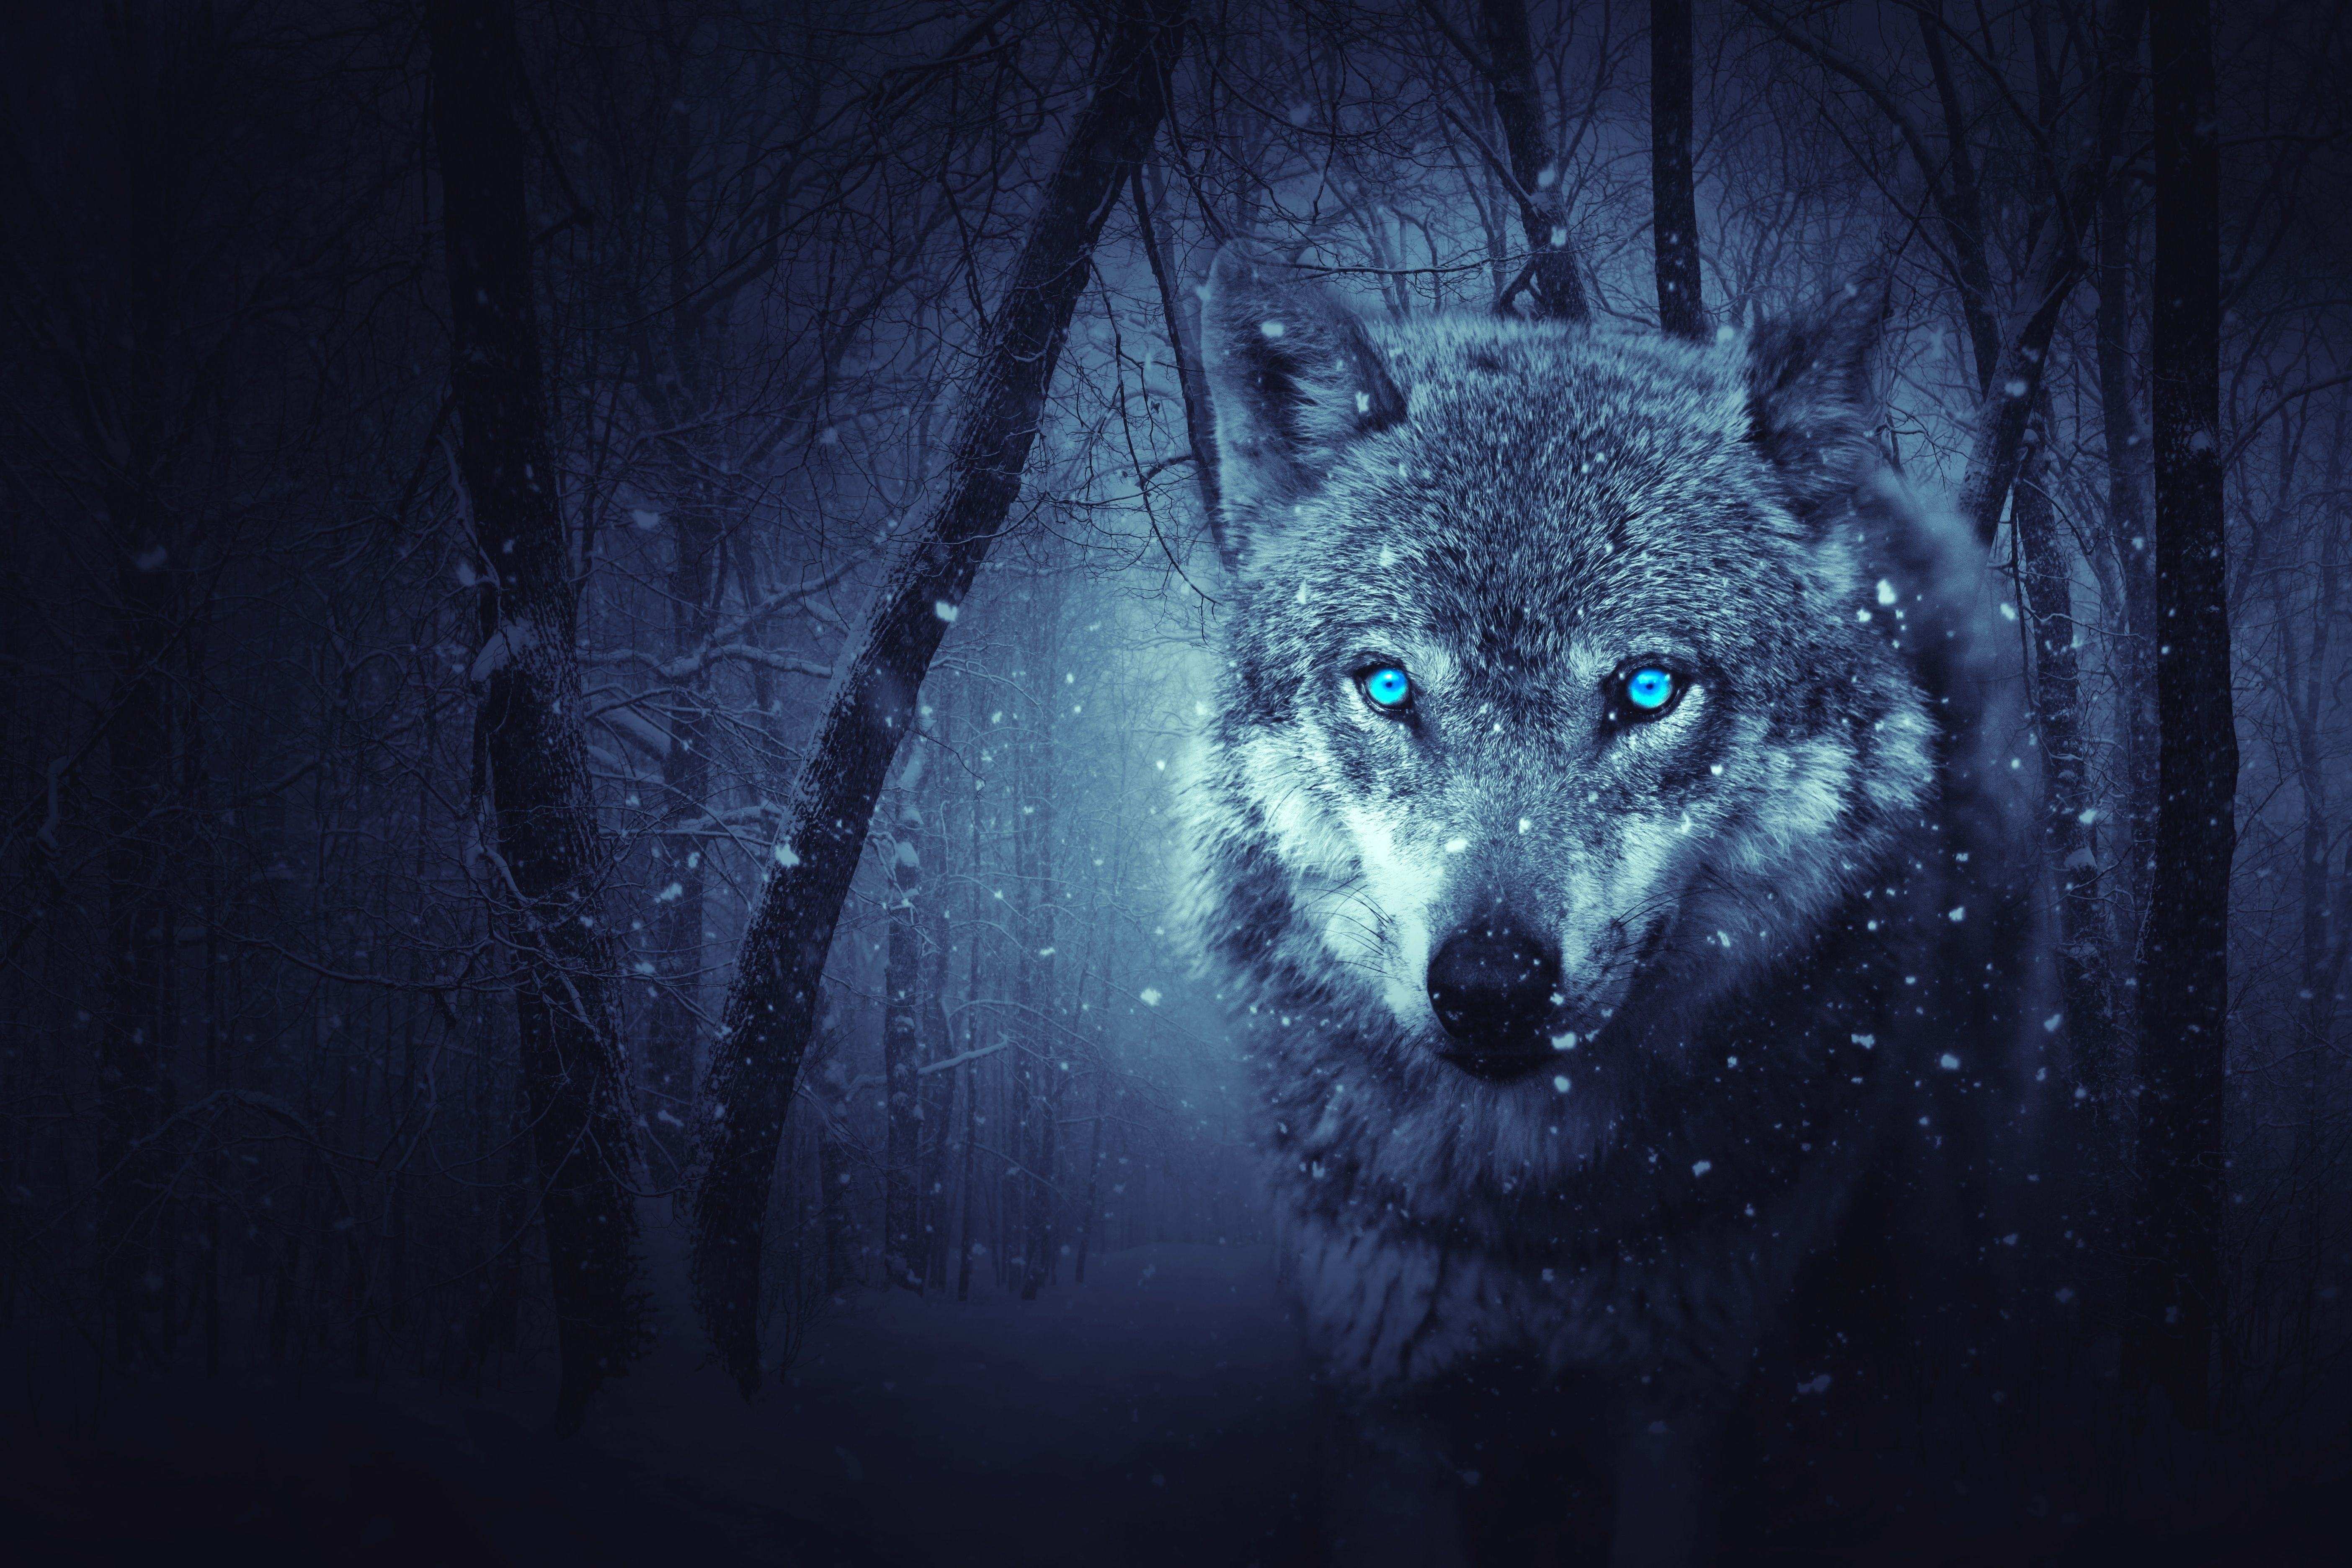 Scary Wolf Wallpapers - Top Free Scary